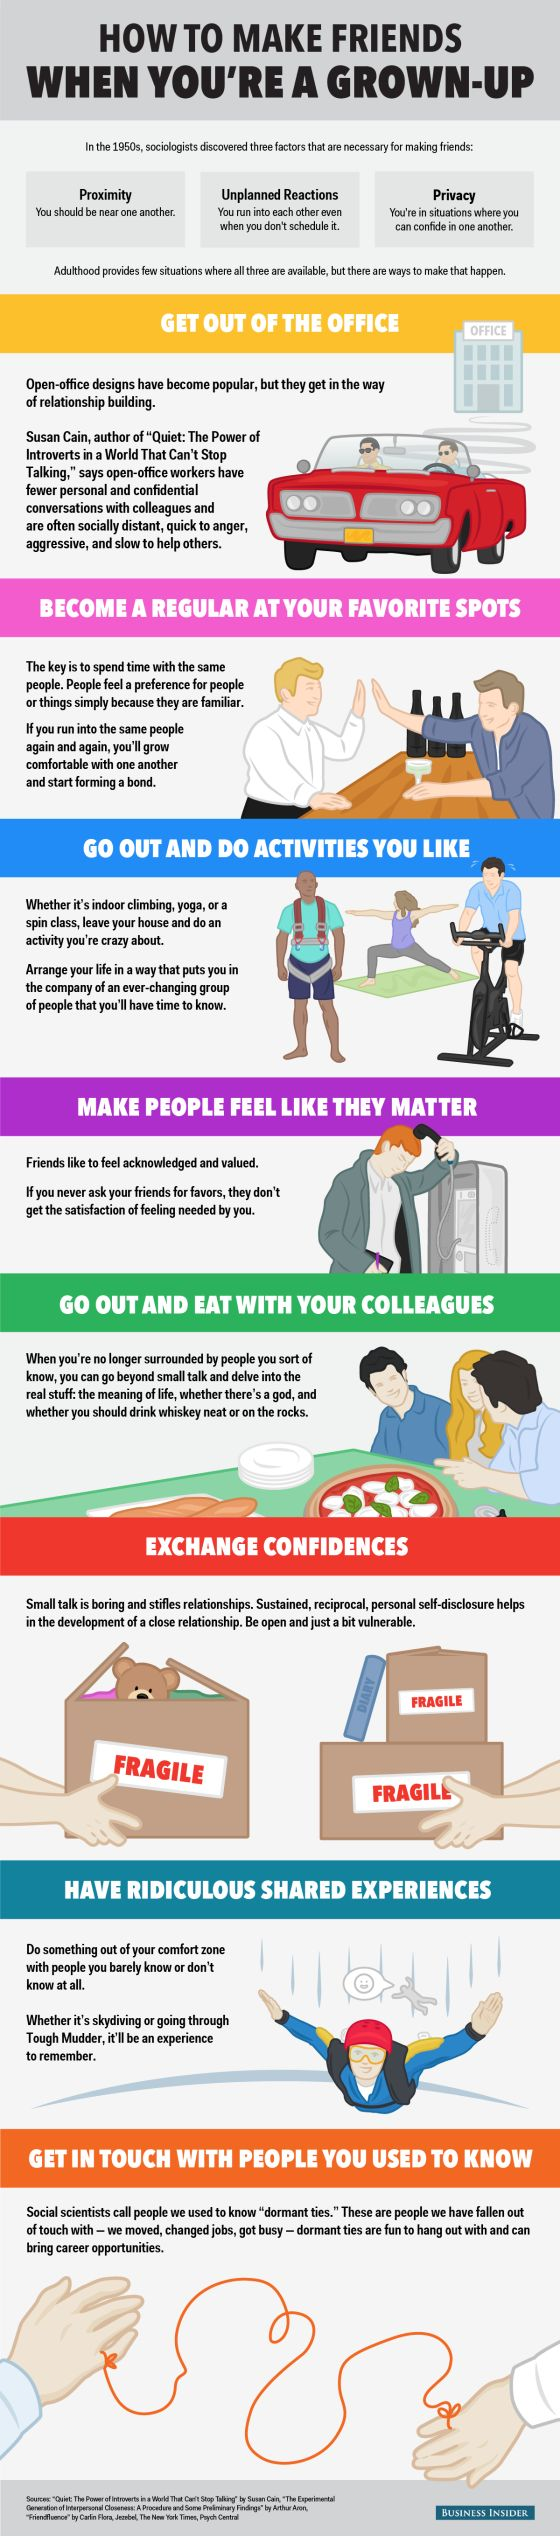 How to Make Friends as an Adult - Making friends in school was easy.  But once youre all grown up it gets way harder  especially if youve just moved to a new city.